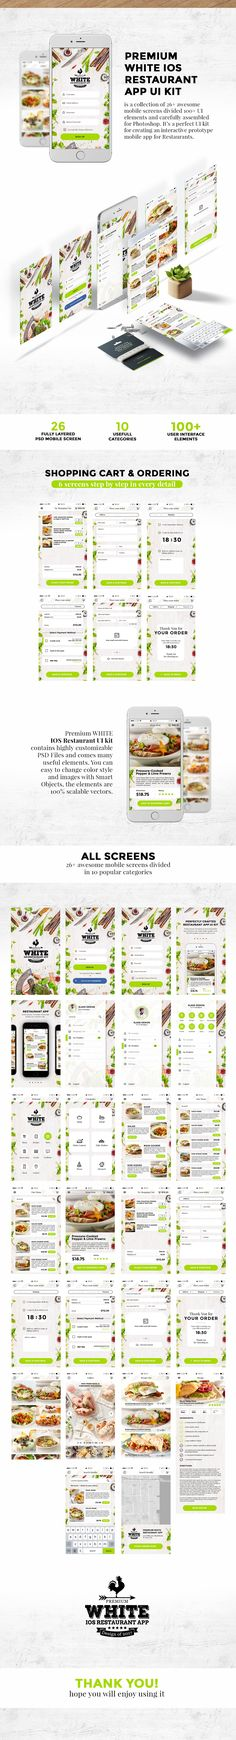 Super high-quality pack of 26 mobile IOS screen ready to use in your amazing project.UI KIT is a collection of awesome mobile screens divided UI Elements and carefully assembled for Photoshop. Restaurant App, White Restaurant, Visual Hierarchy, Ui Elements, Vector Shapes, Ui Kit, Stress Free, Ios App, User Interface